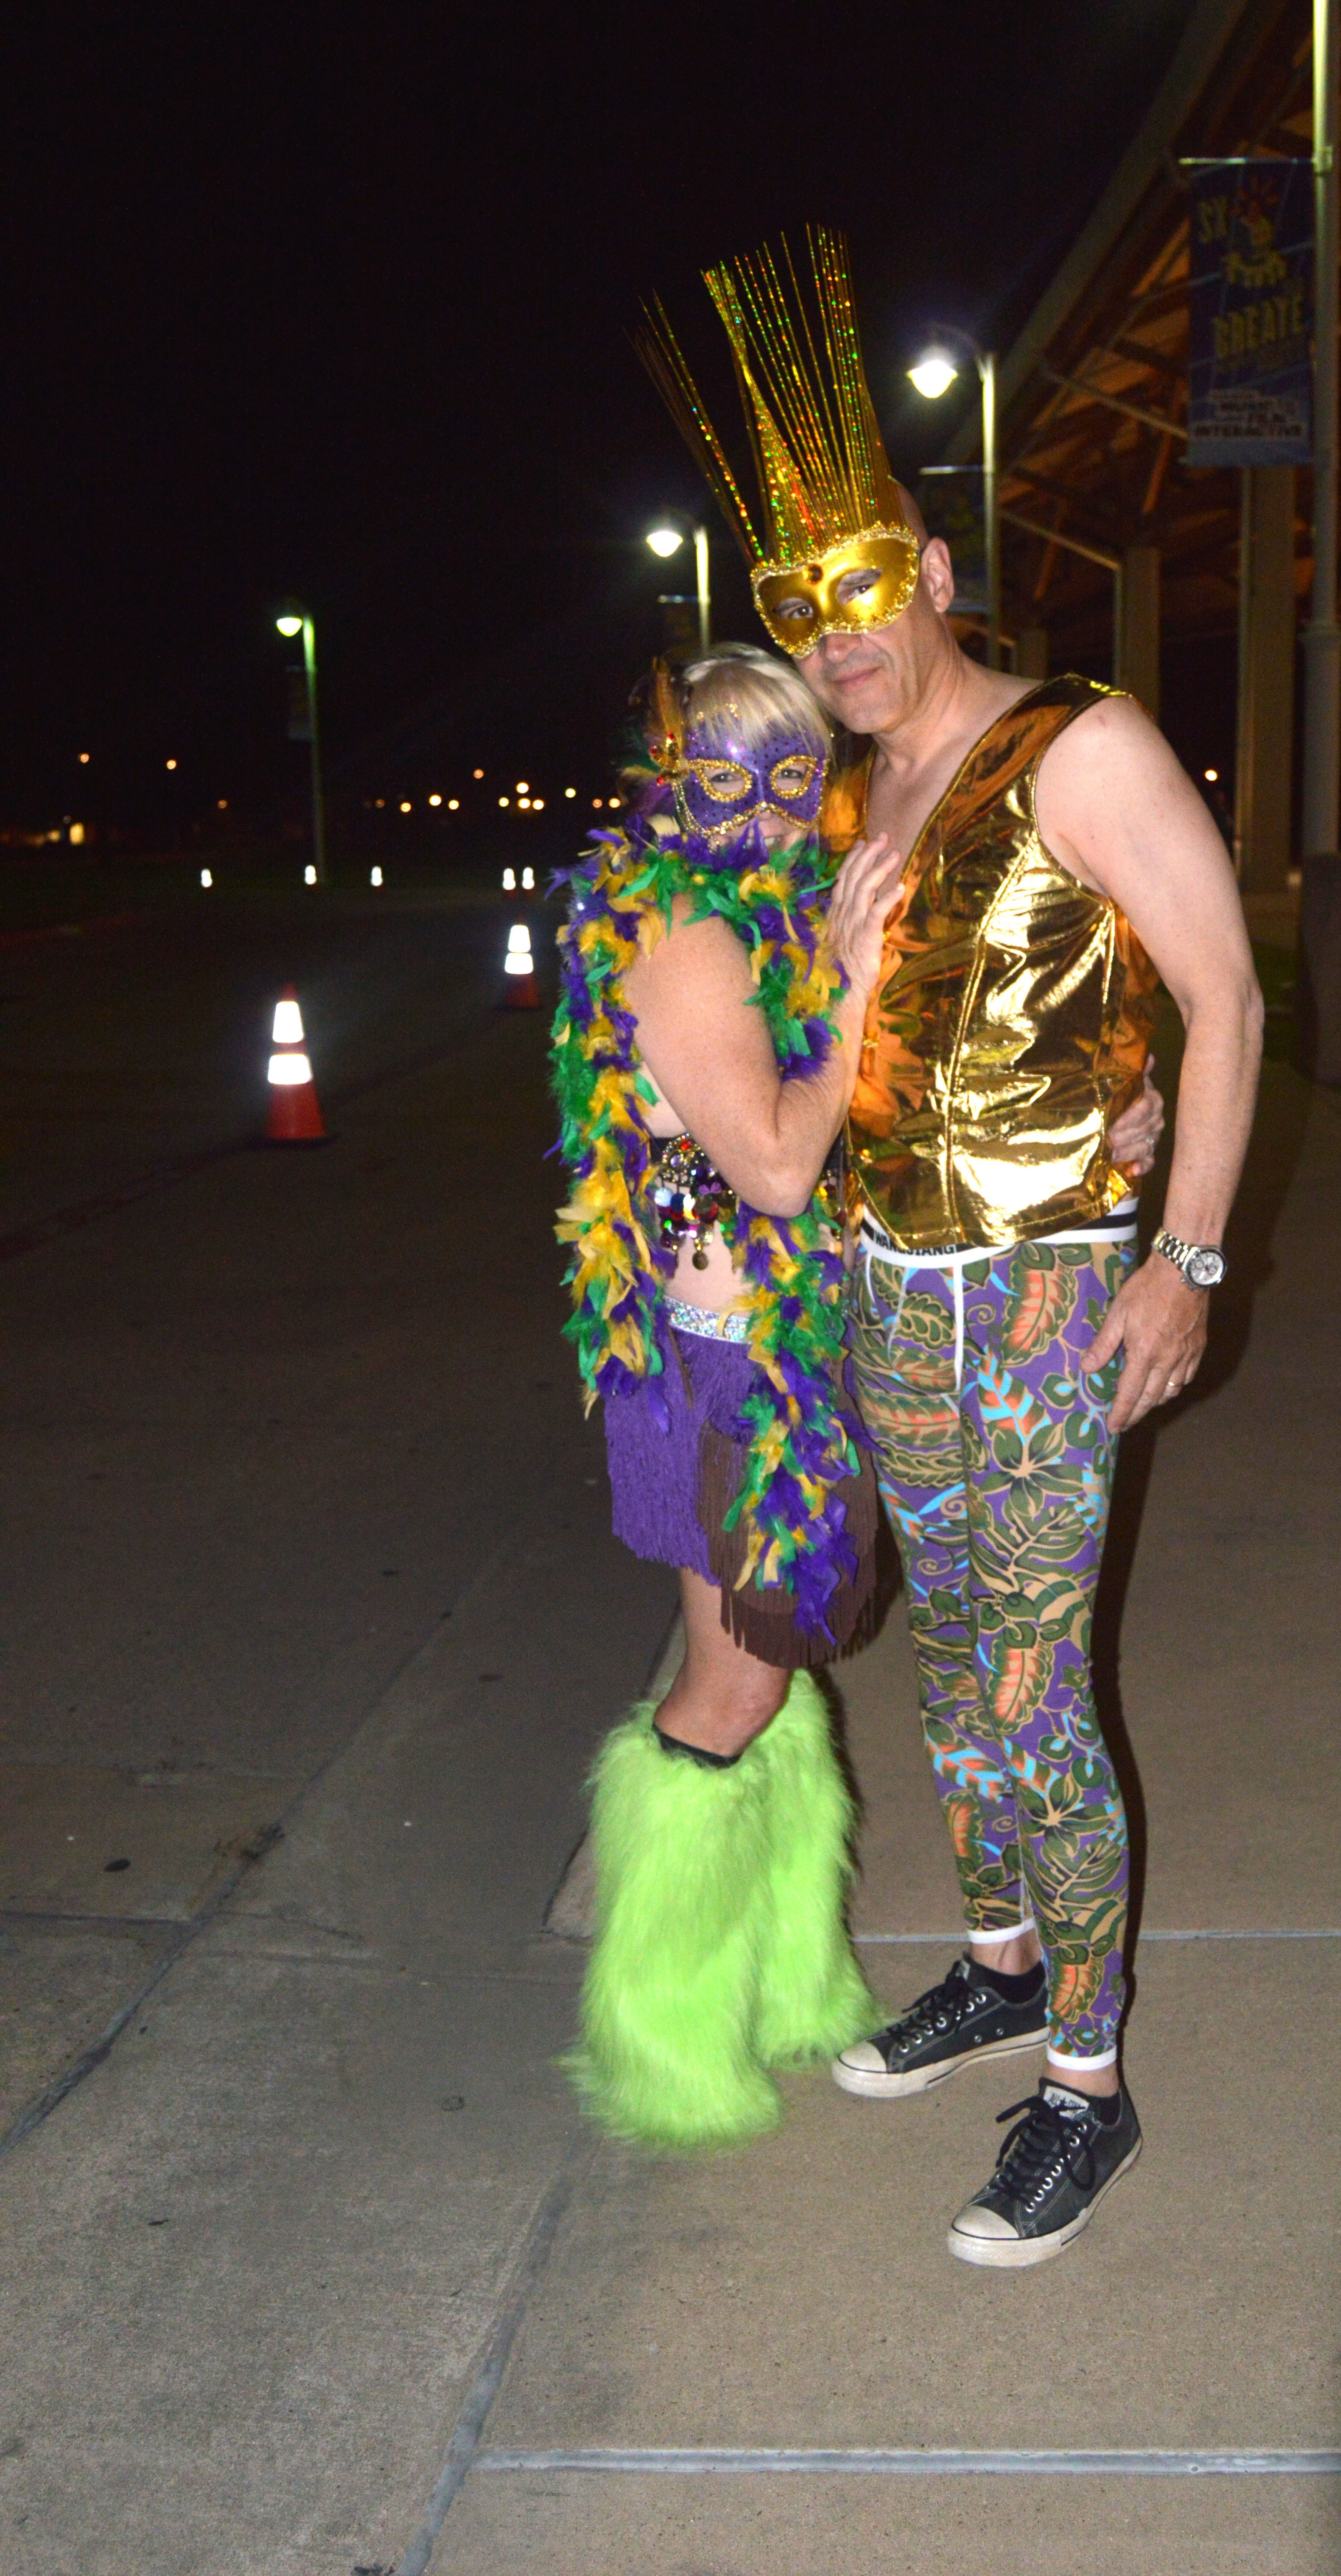 A couple dressed up in Mardi Gras themed costumes shared that this is their first time at Austin's Carnaval celebration.